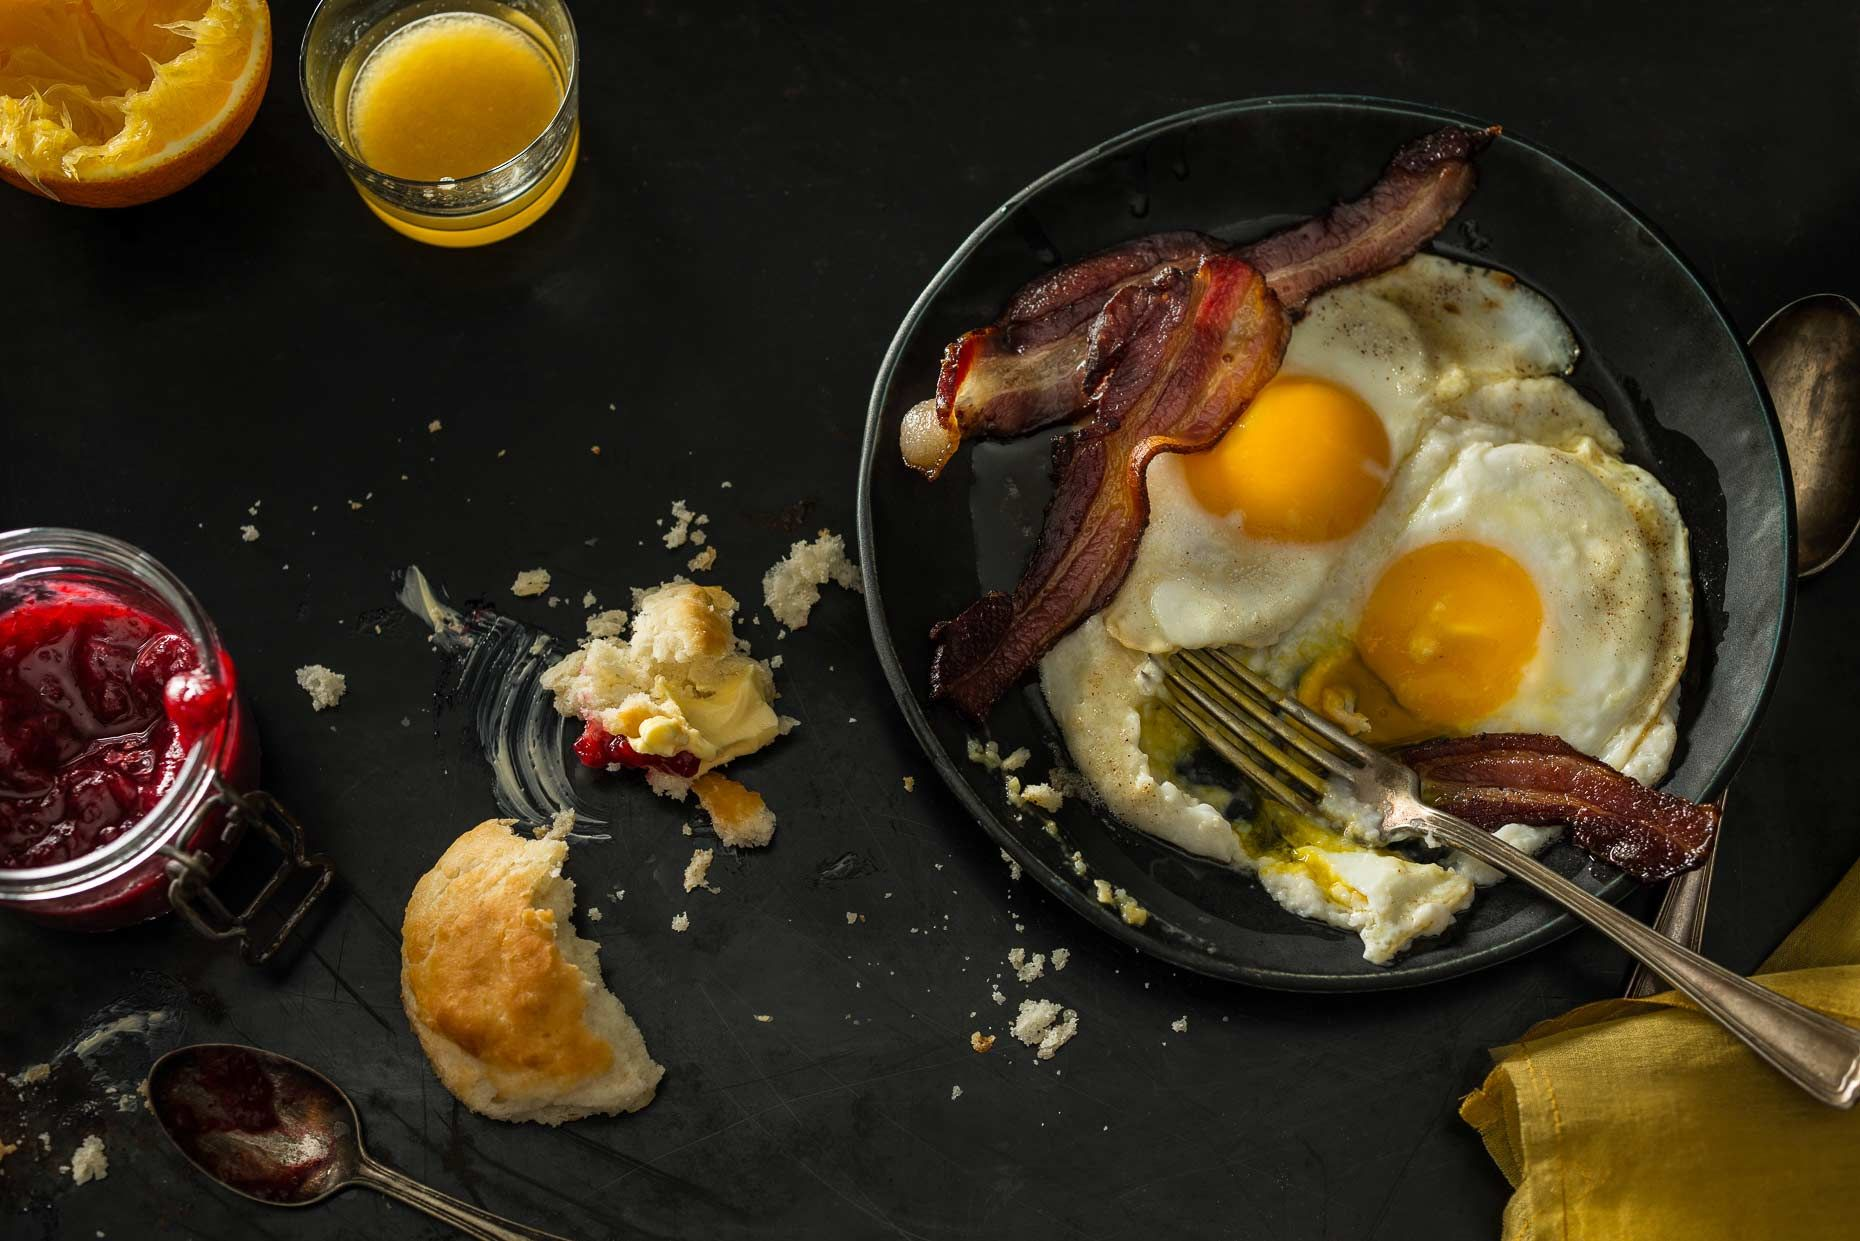 Francesco tonelli is a food photographer in new york his